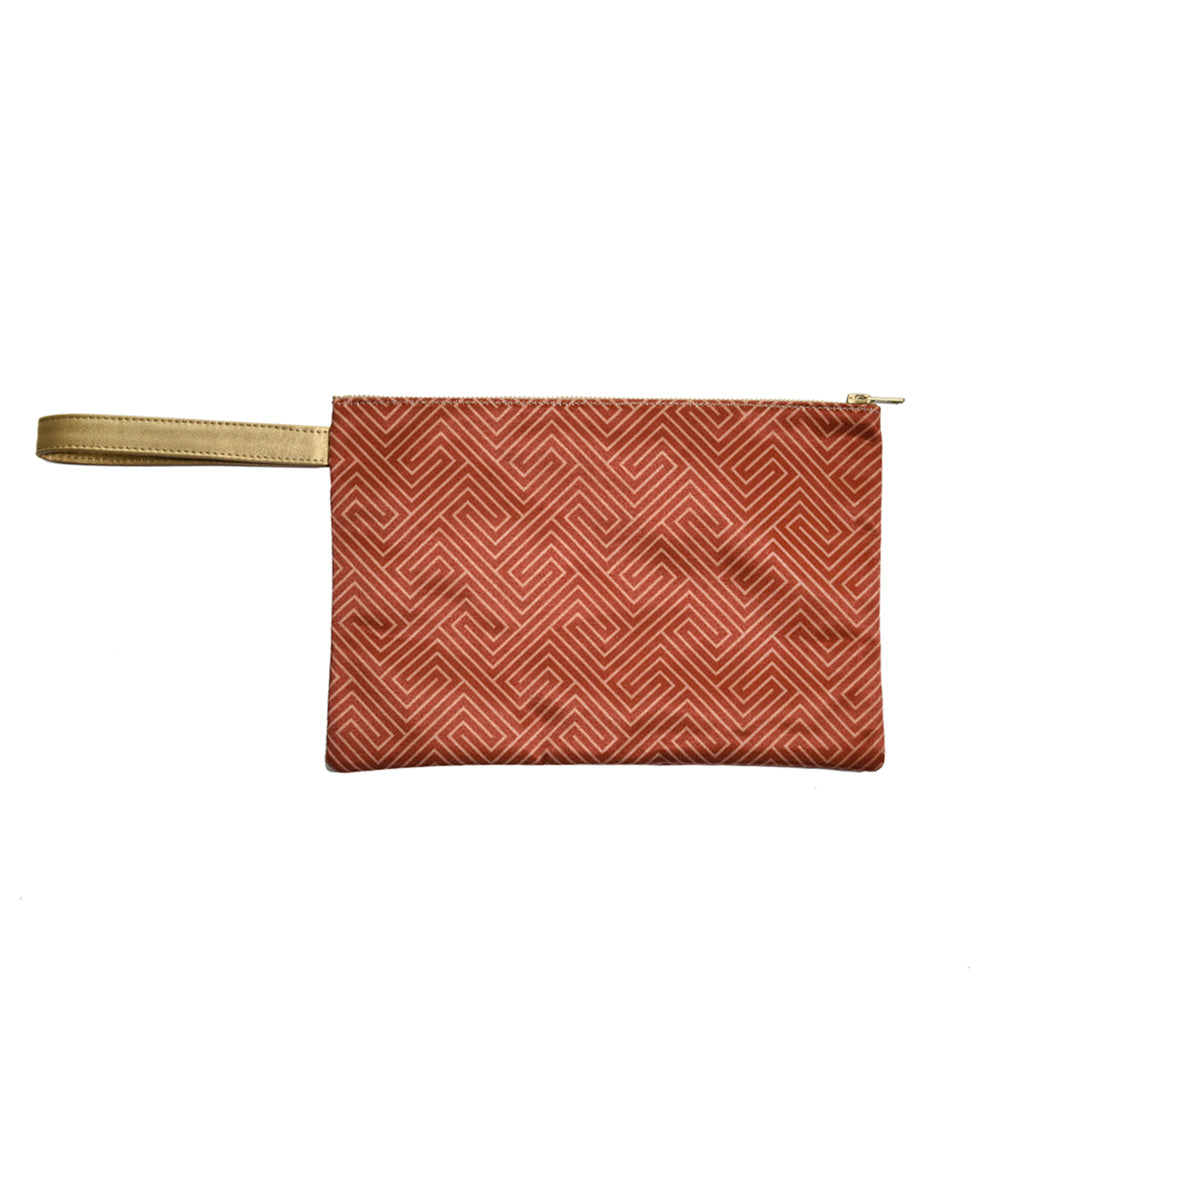 Brick Red Satin Canvas Clutch with Leather Details